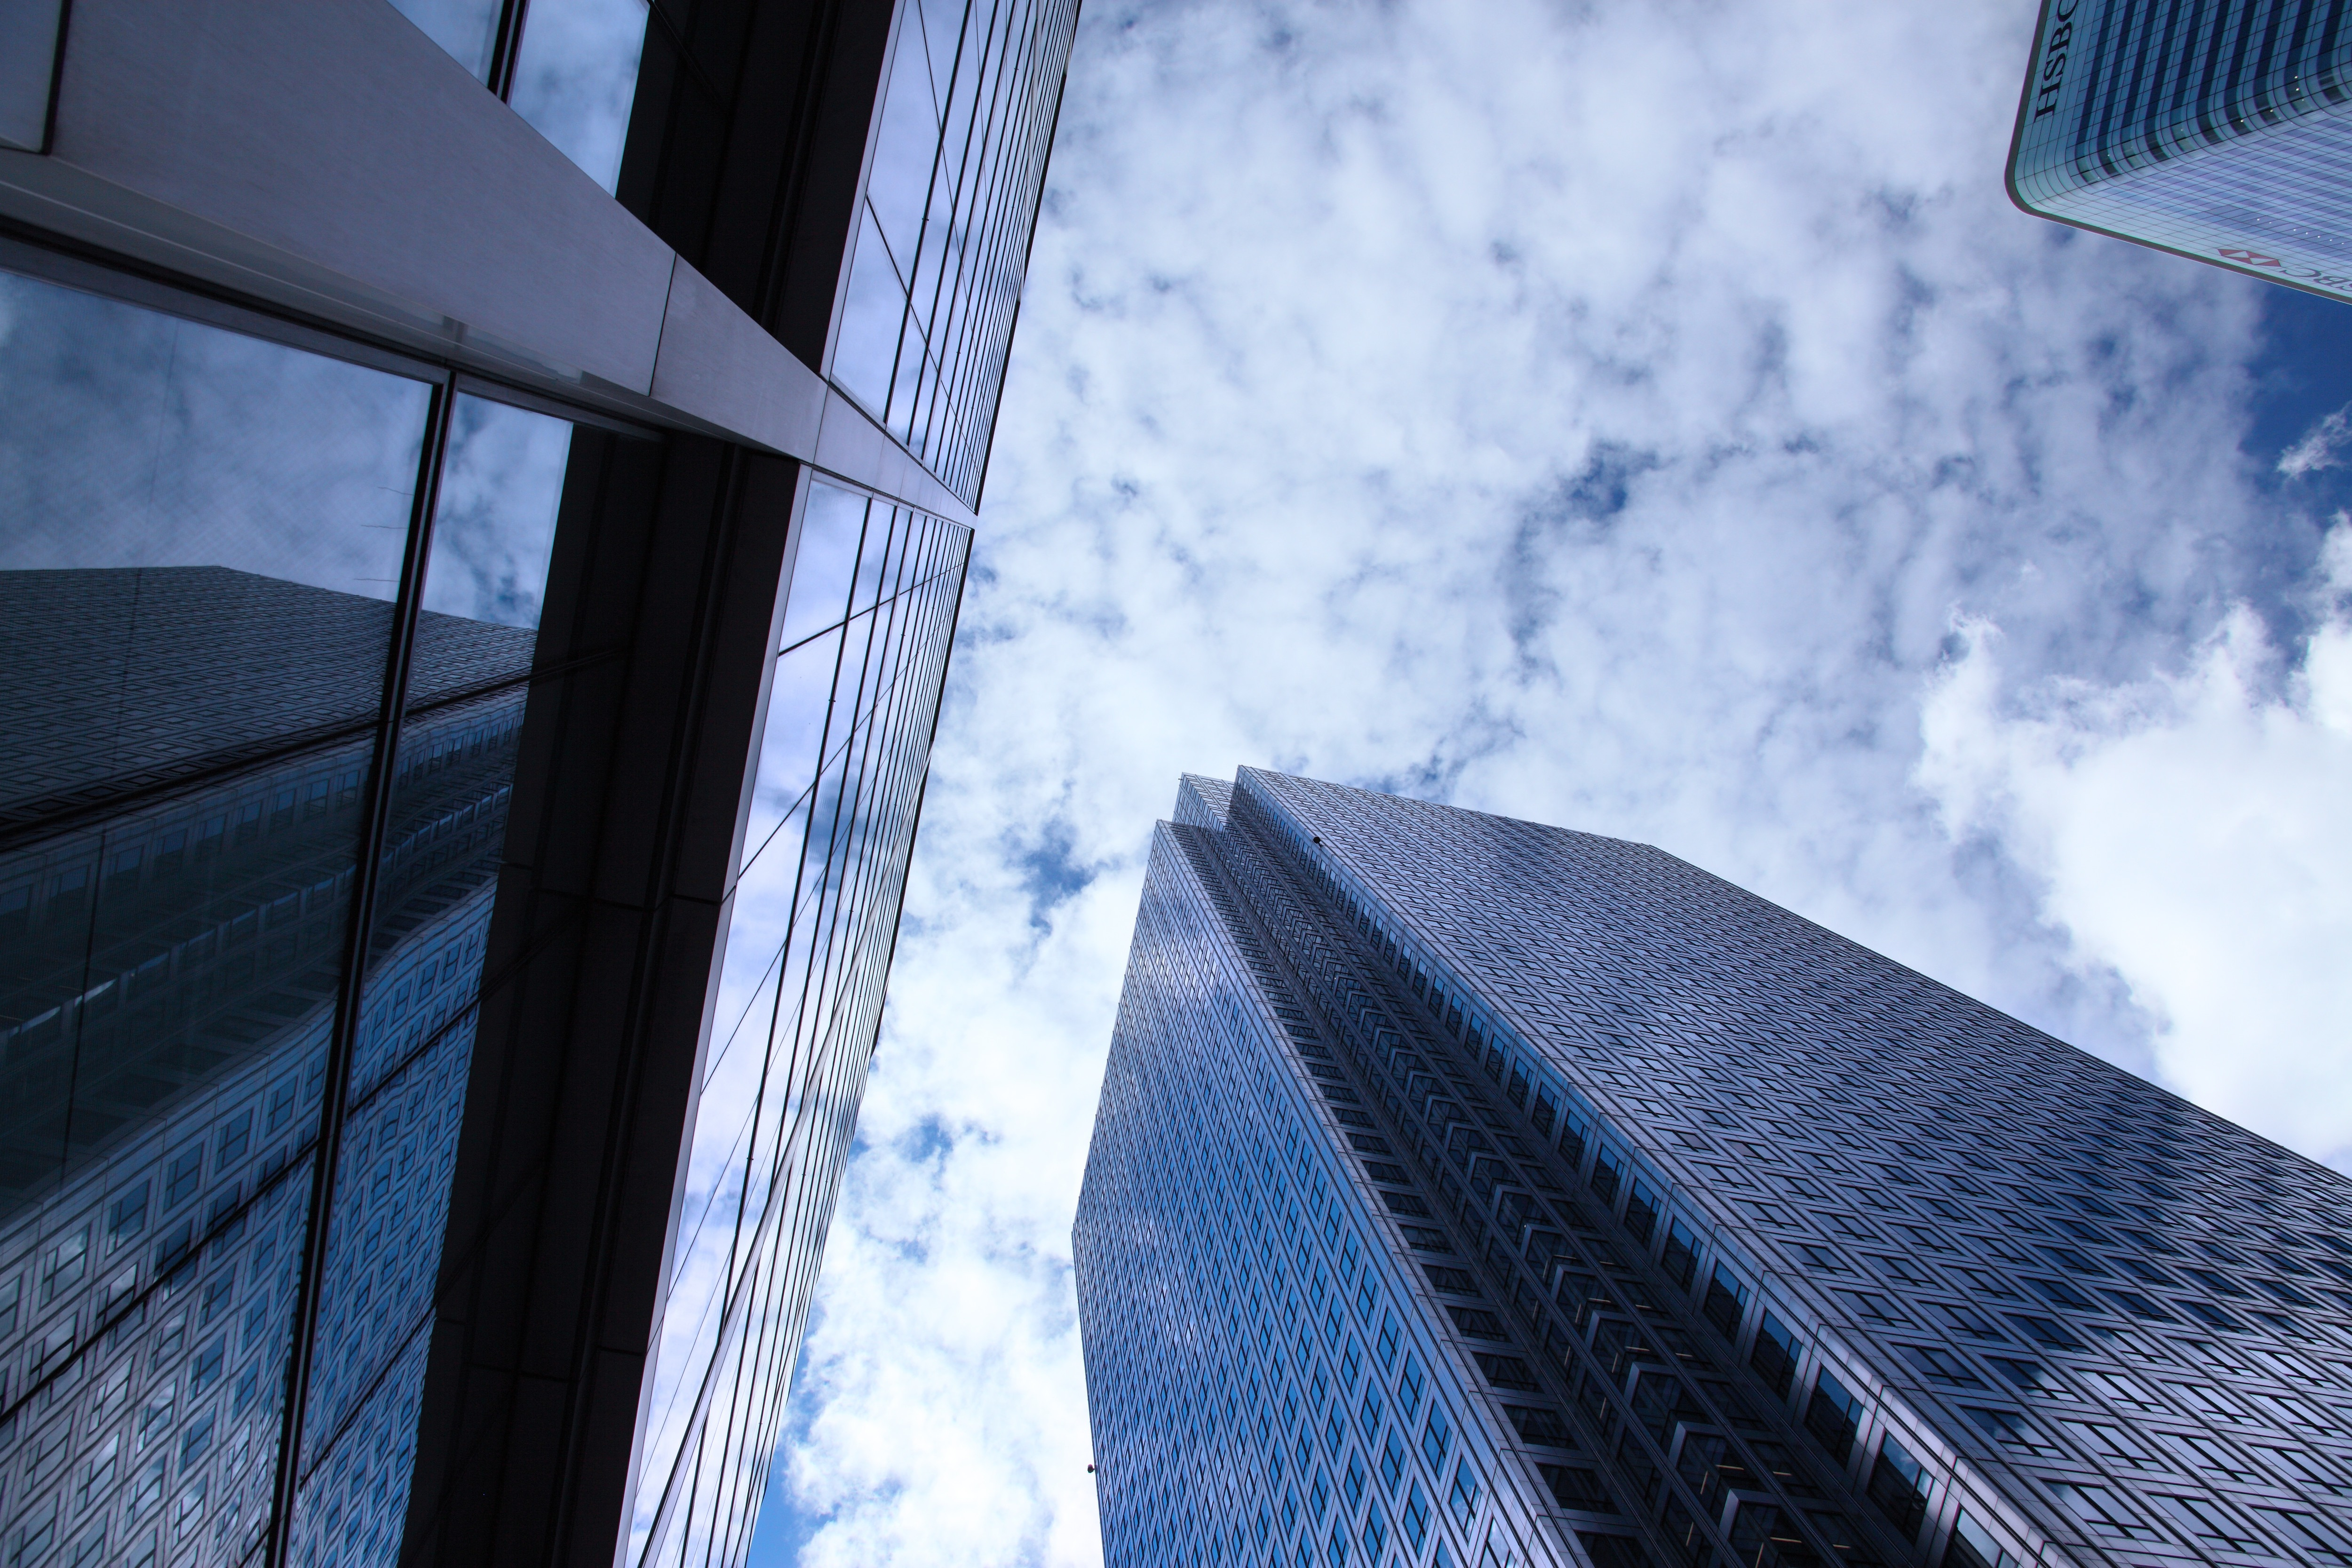 Professional Liability Litigation, Solimano Law, Vancouver Lawyers, City Building